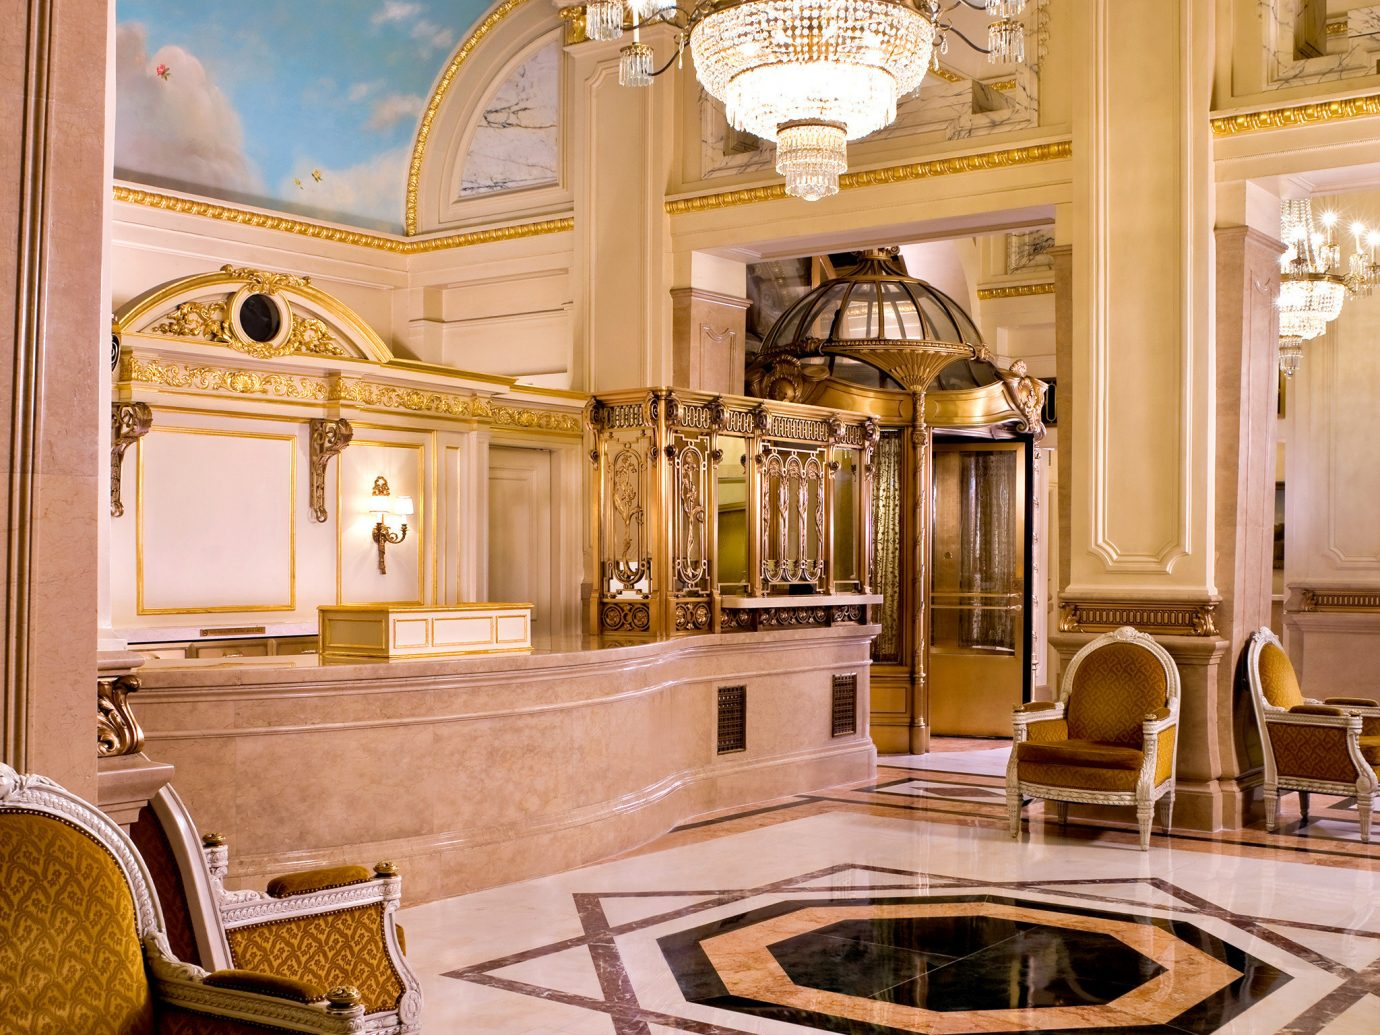 Hotels NYC indoor room property estate home mansion interior design living room ceiling palace cabinetry